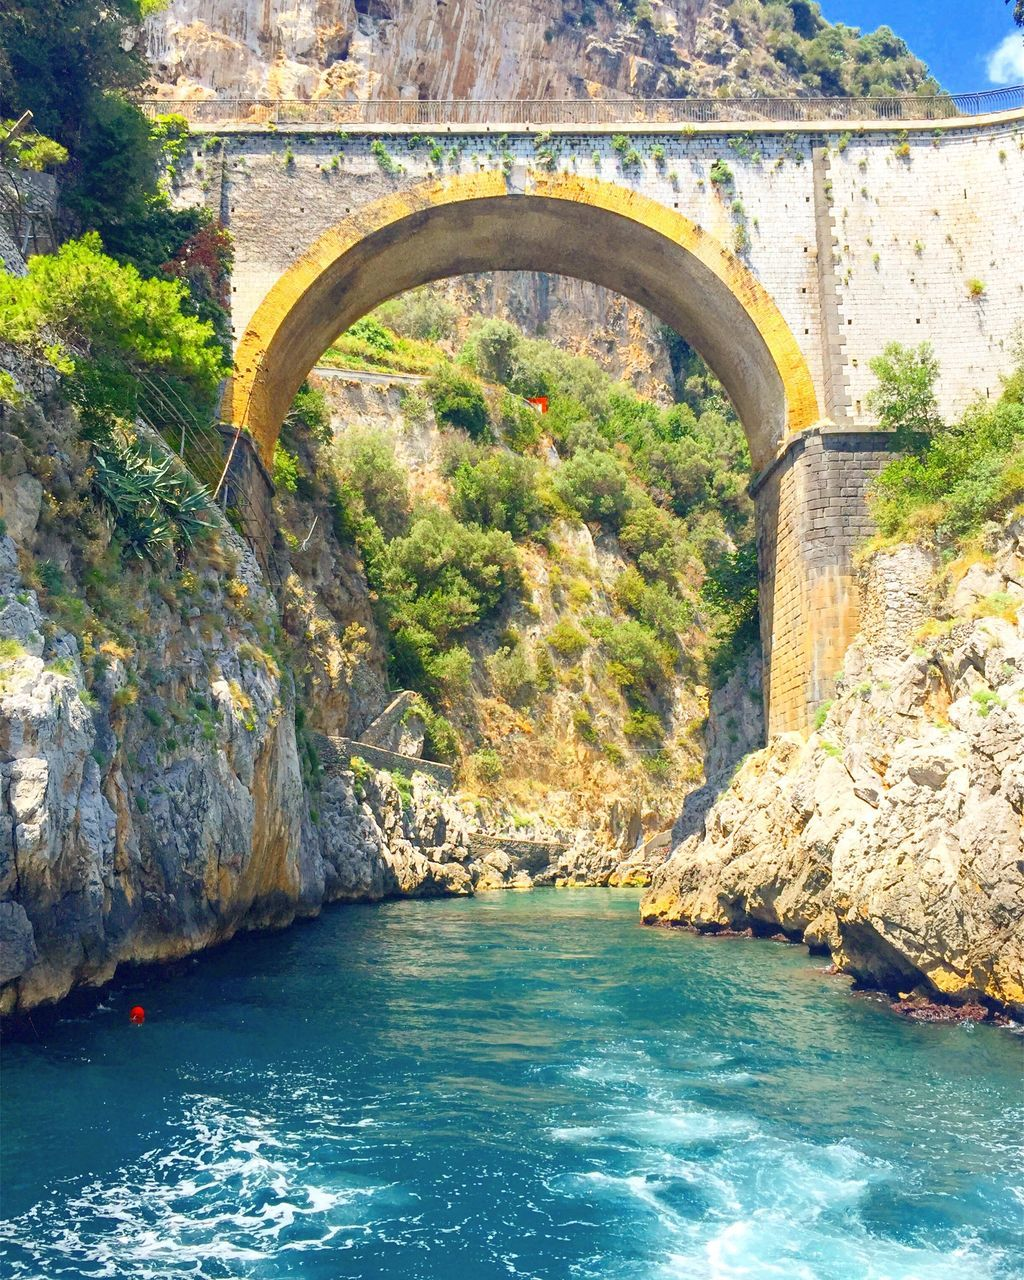 arch, water, rock - object, bridge - man made structure, day, nature, architecture, tranquility, scenics, outdoors, no people, travel destinations, beauty in nature, tree, sea